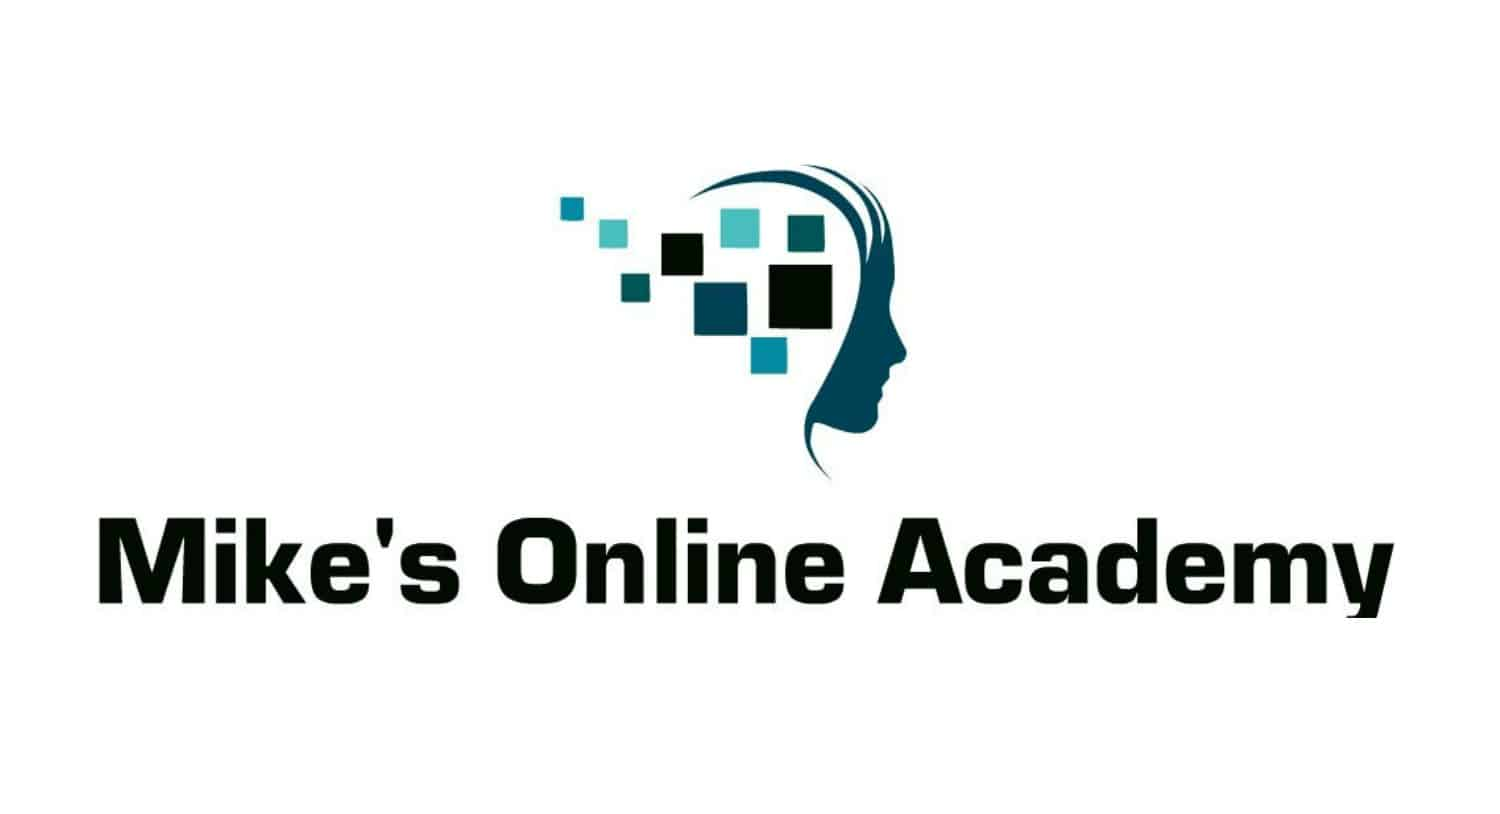 Mikes Online Academy